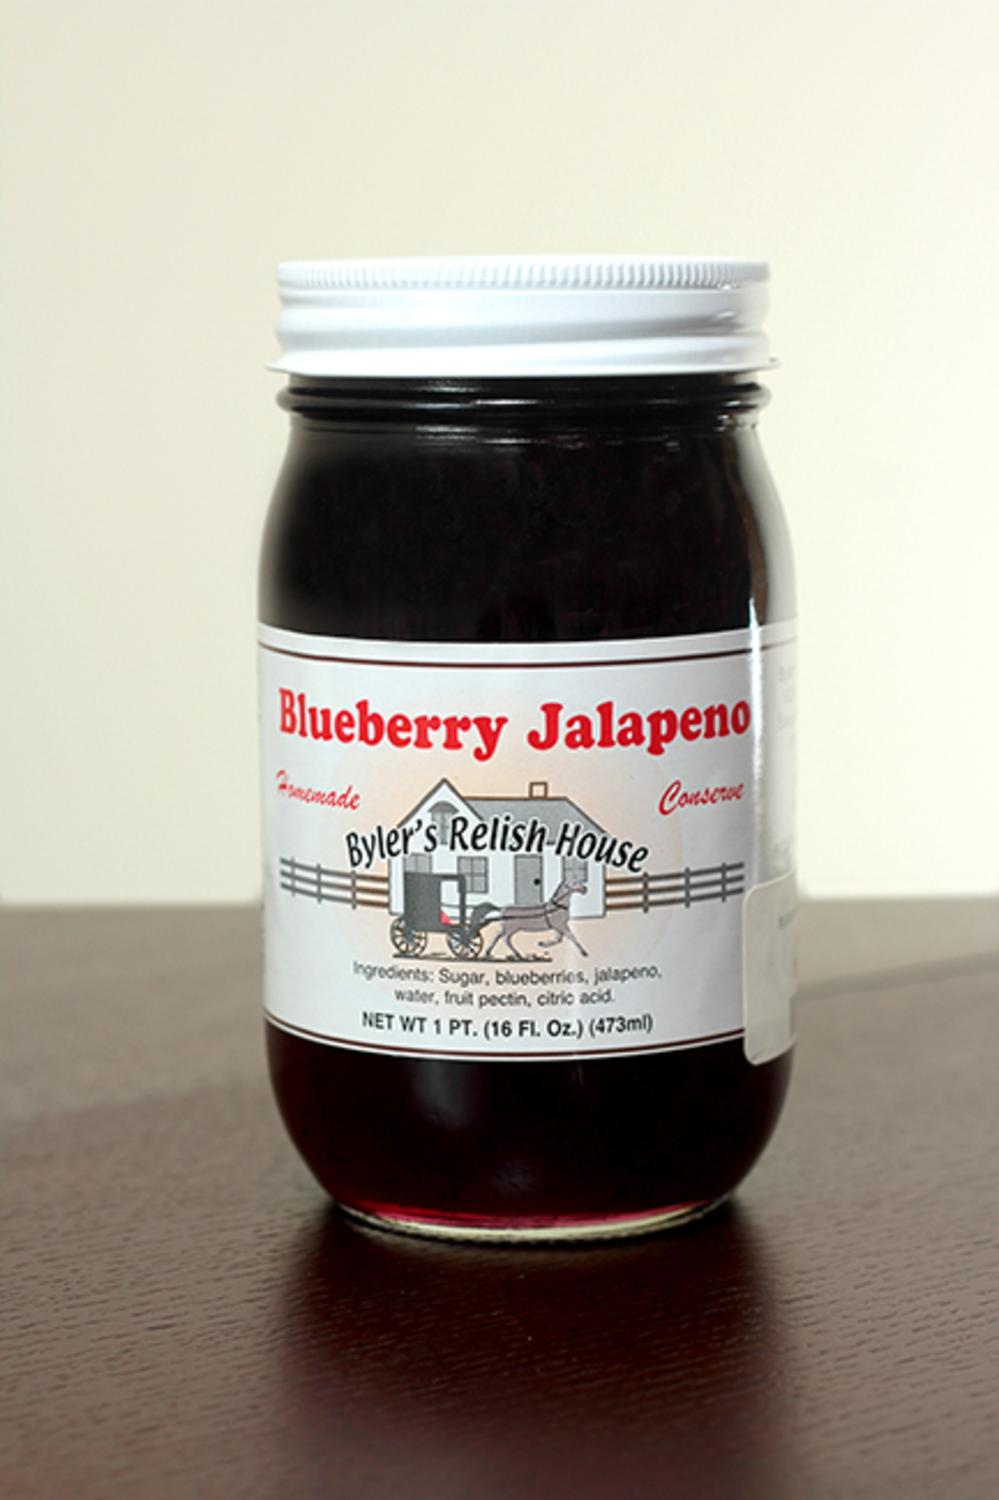 Byler's Homemade Amish Country Blueberry Jalapeno Jam 16oz by Byler's Relish House